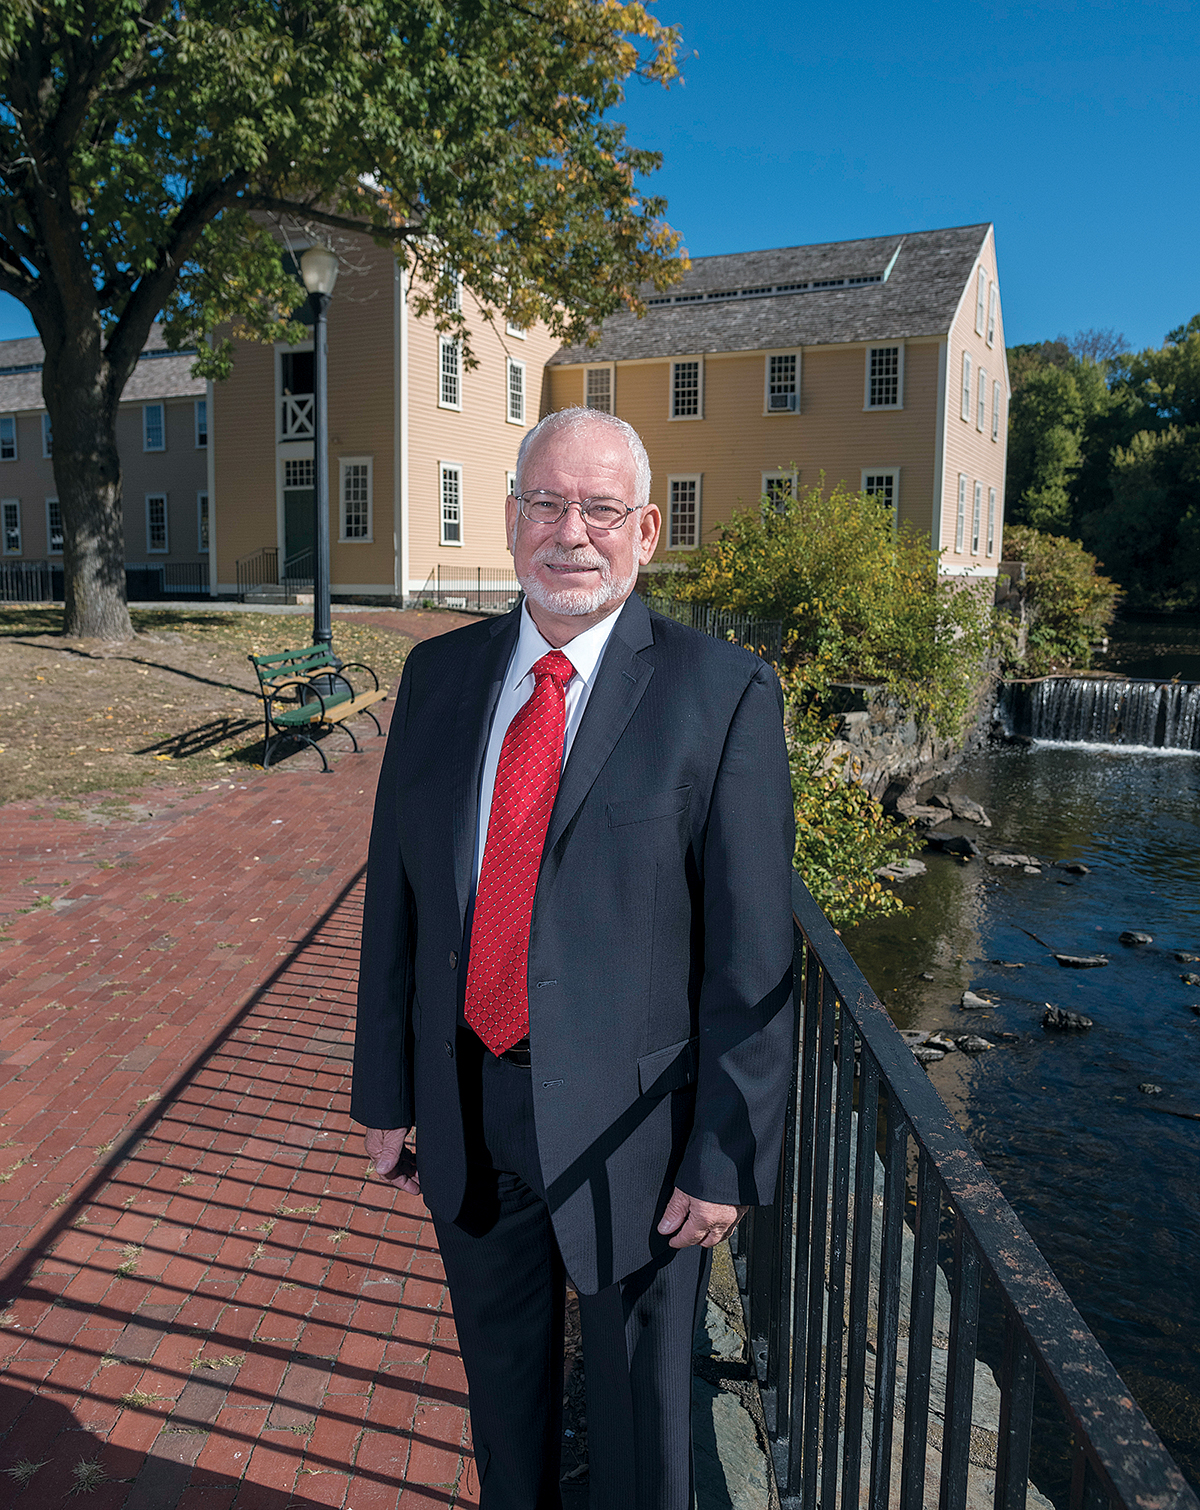 CONNECTING: Avi Nevel, founder of the Rhode Island-Israel Collaborative, a nonprofit organization seeking to establish business, academic and trade exchanges with Israel, at Old Slater Mill in Pawtucket. / PBN PHOTO/MICHAEL SALERNO